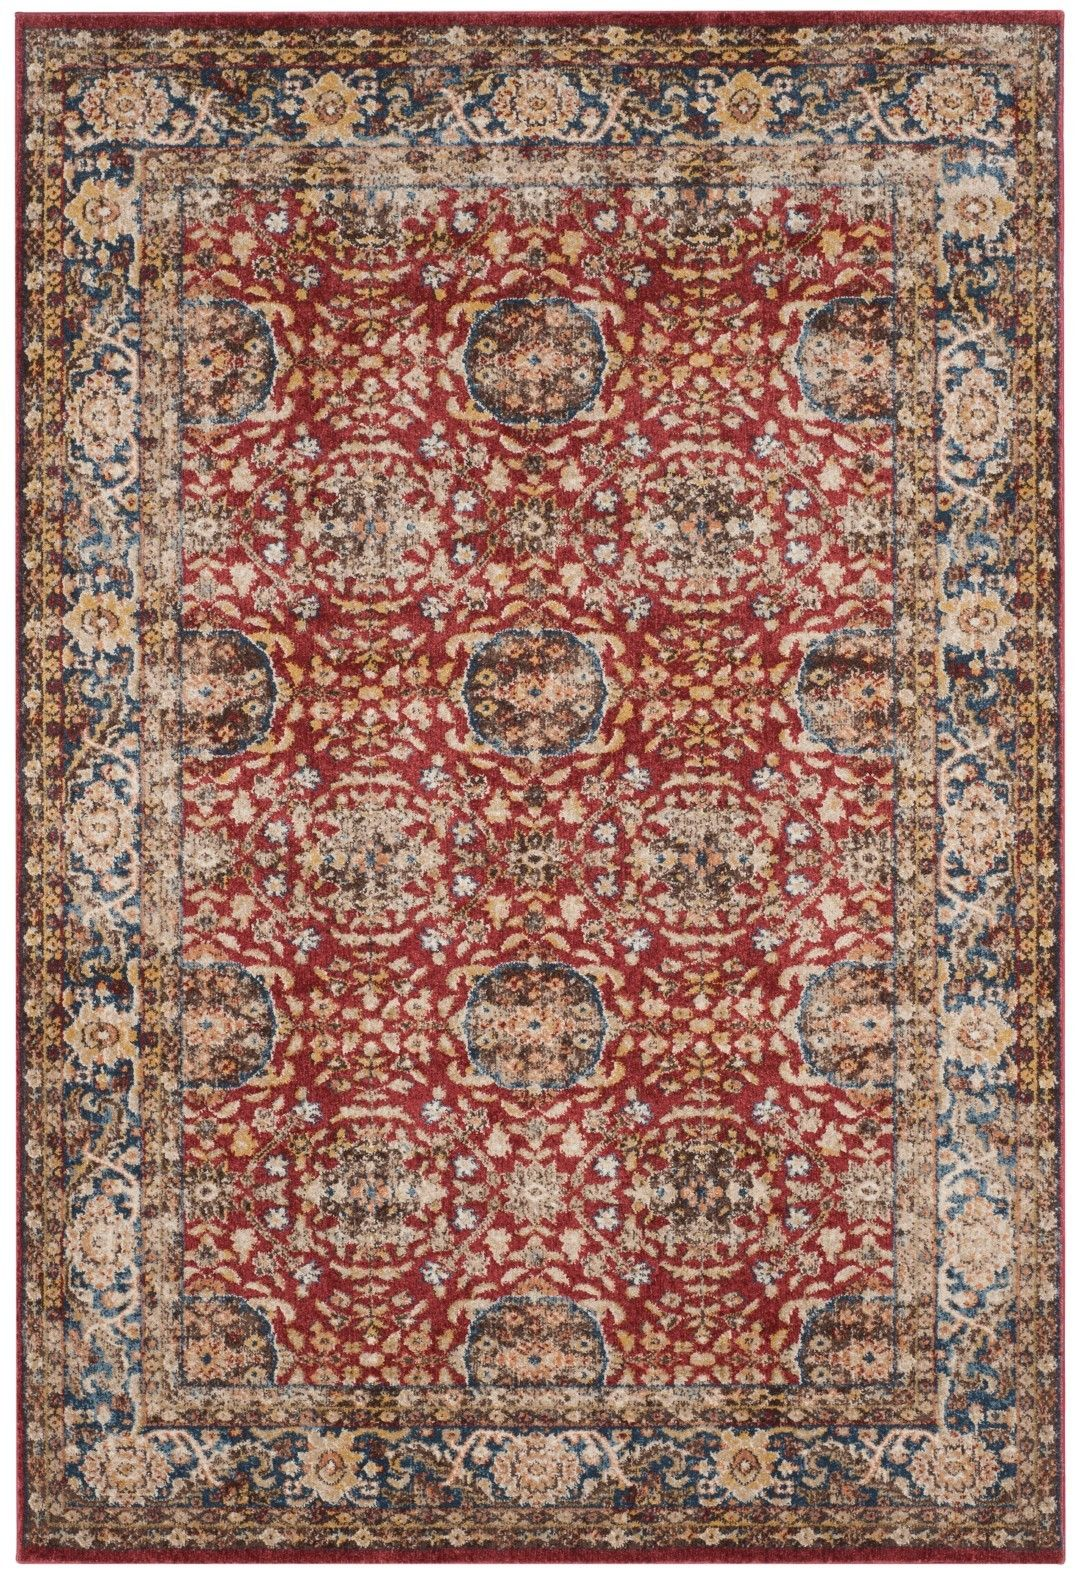 Broomhedge Oriental Red Area Rug Area Rugs Rugs Classic Rugs